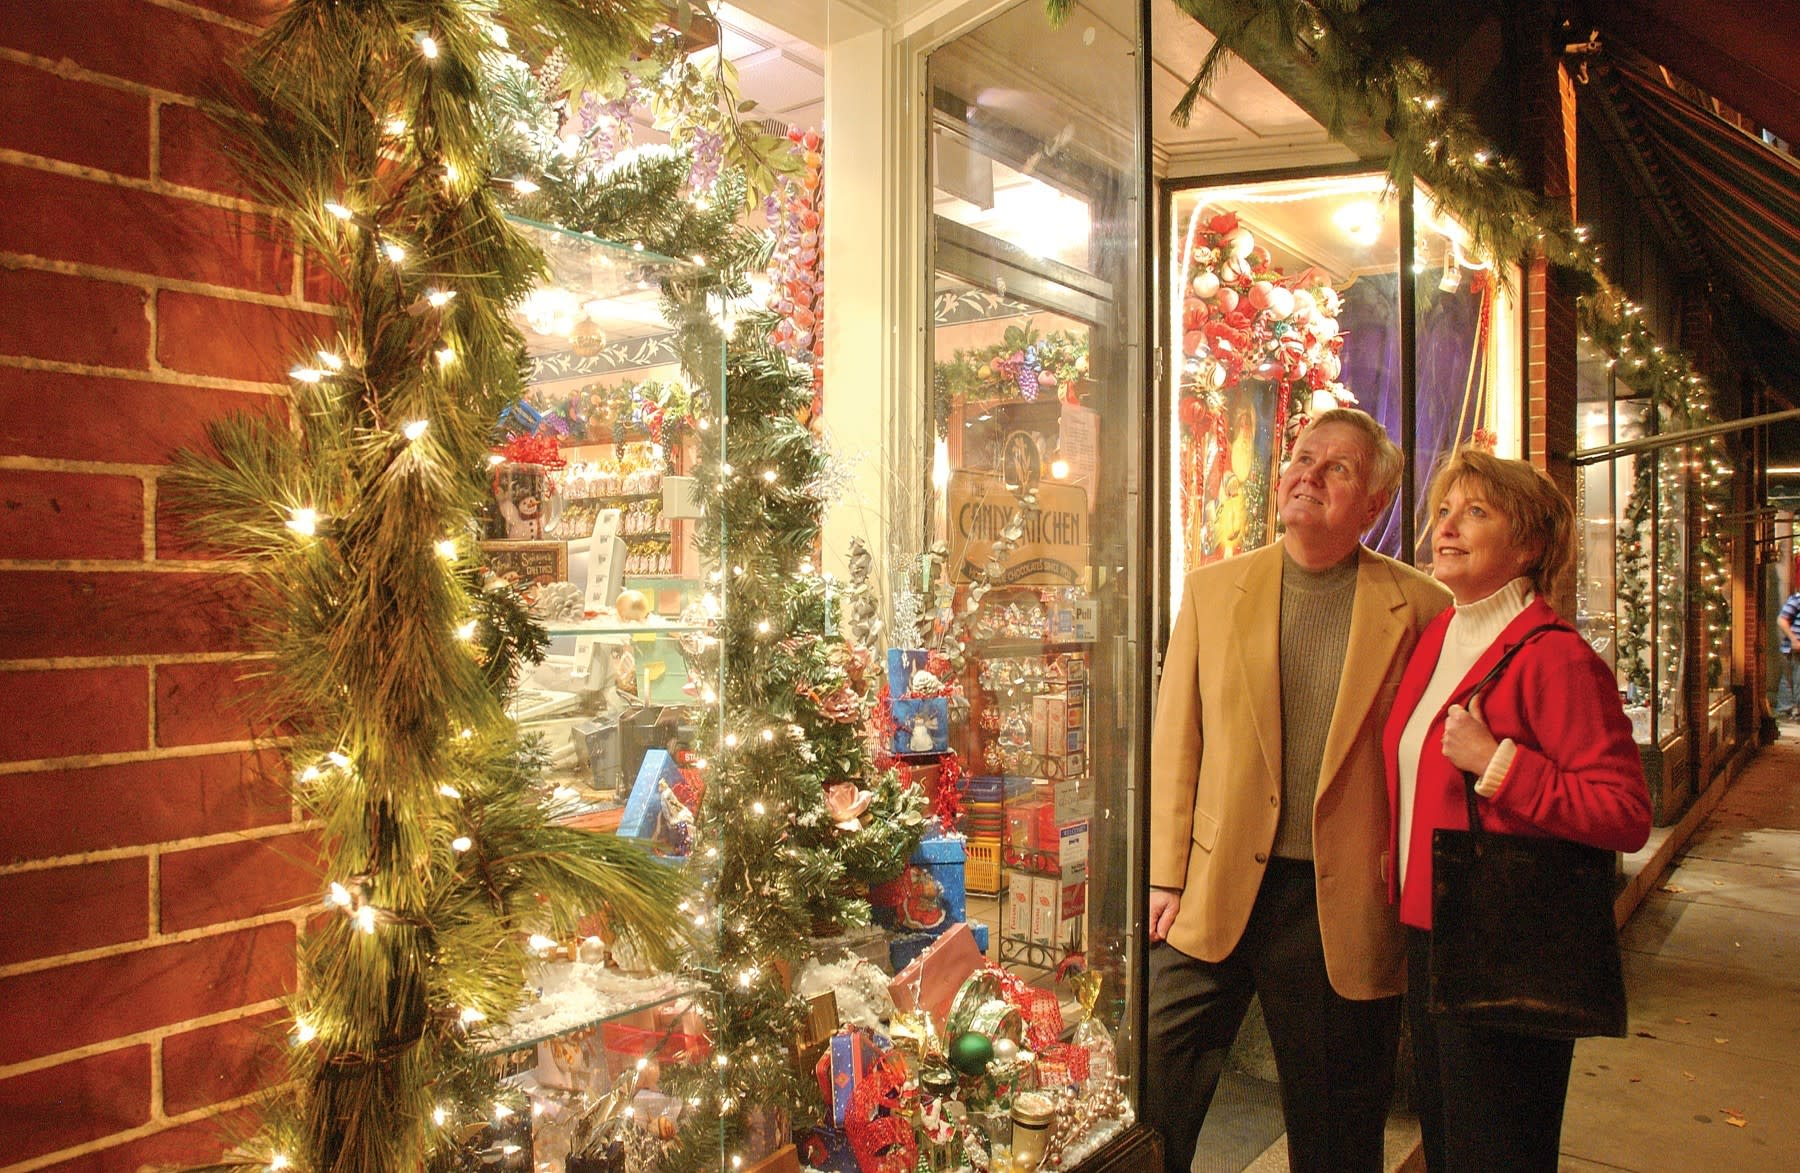 Man and woman window shopping during the holidays in Downtown Frederick